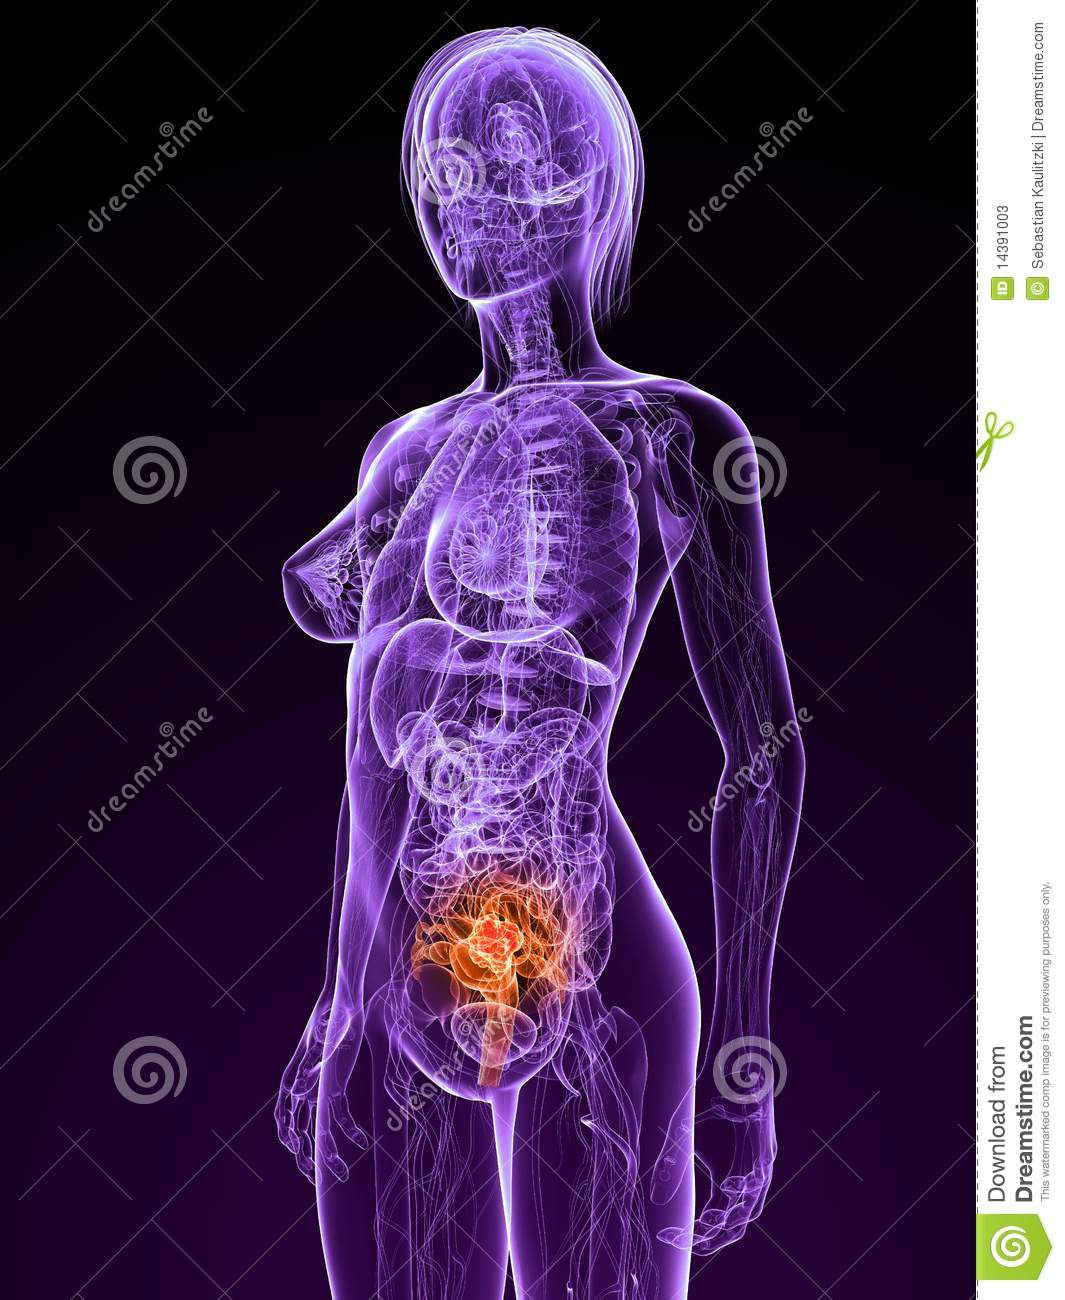 liver and spleen diagram stereo wire uterus cancer stock illustration. image of science, illustration - 14391003